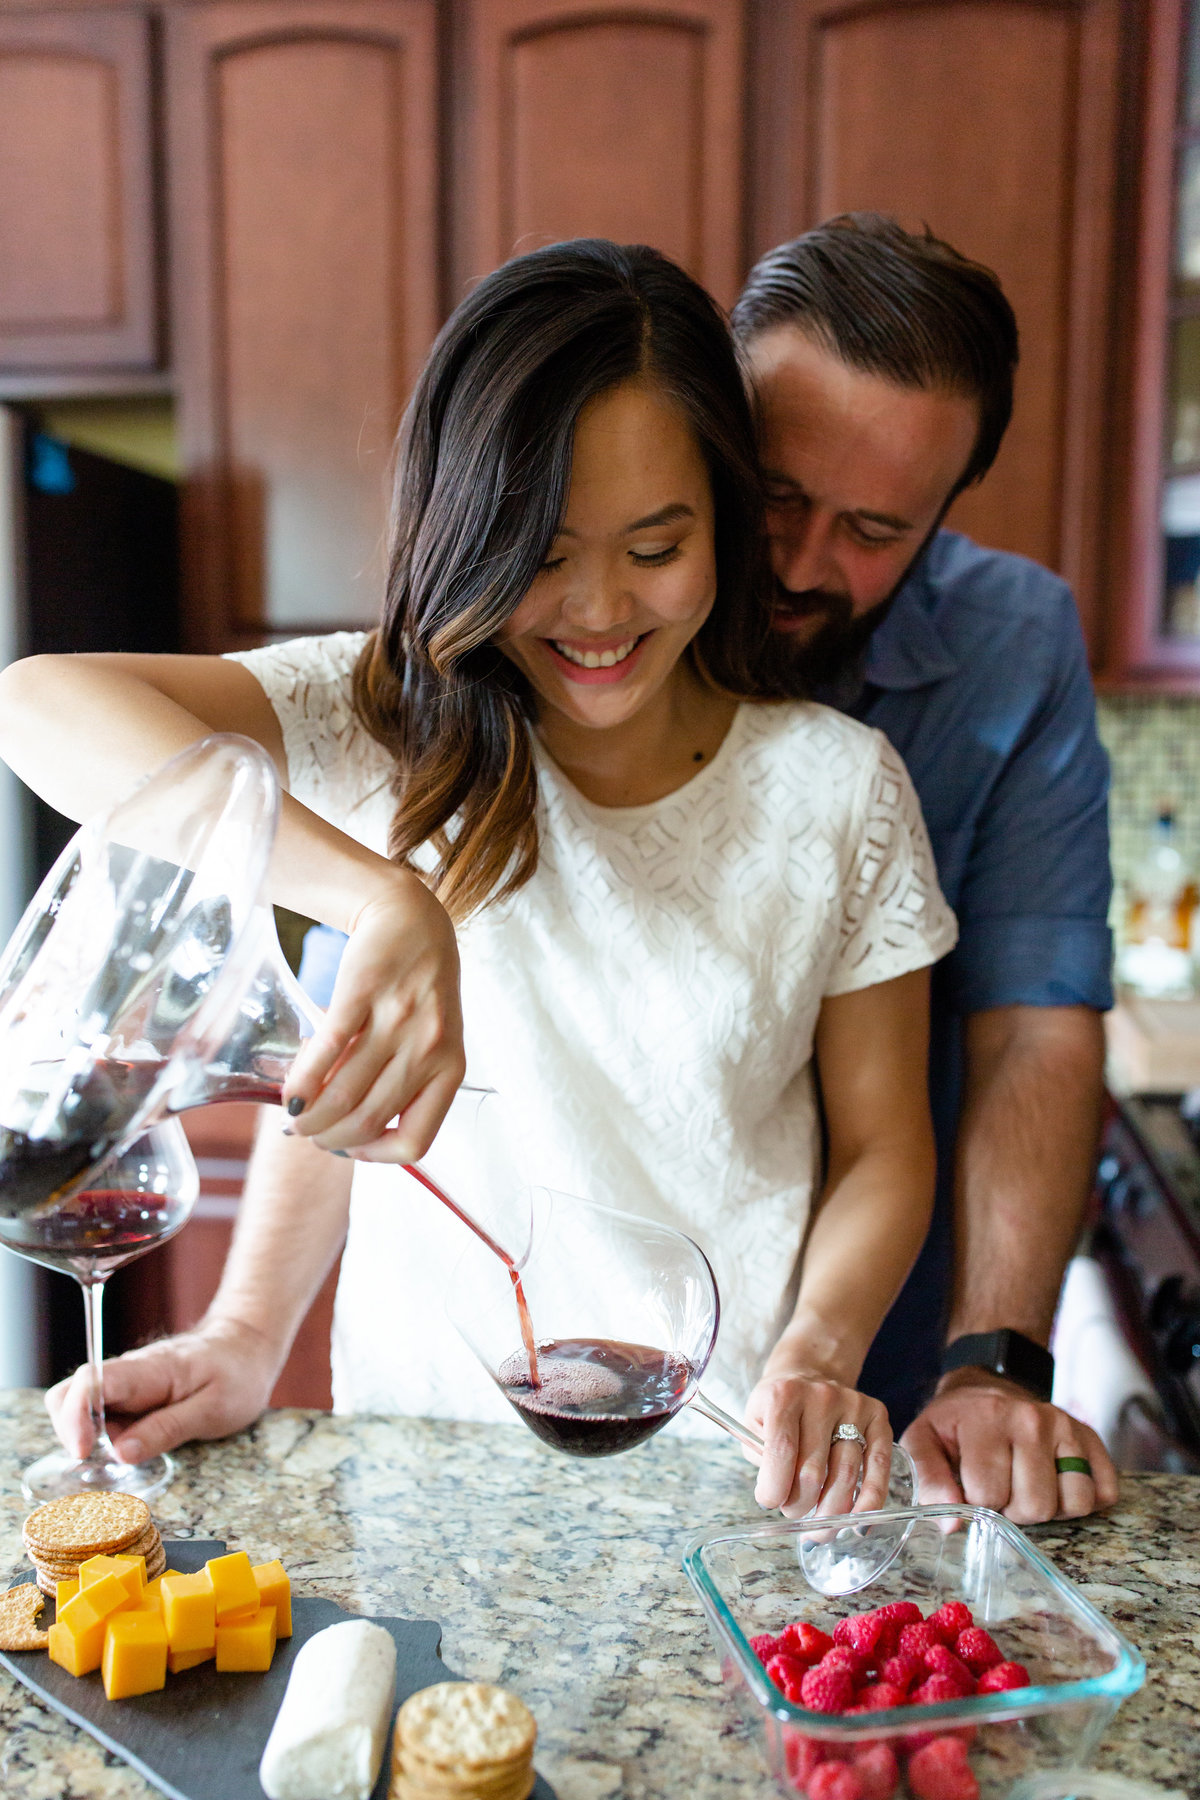 Romantic In Home Lifestyle Couple's  Session pouring wine and cheese plate in kitchen  St. Louis by Amy Britton Photography Photographer  in St. Louis